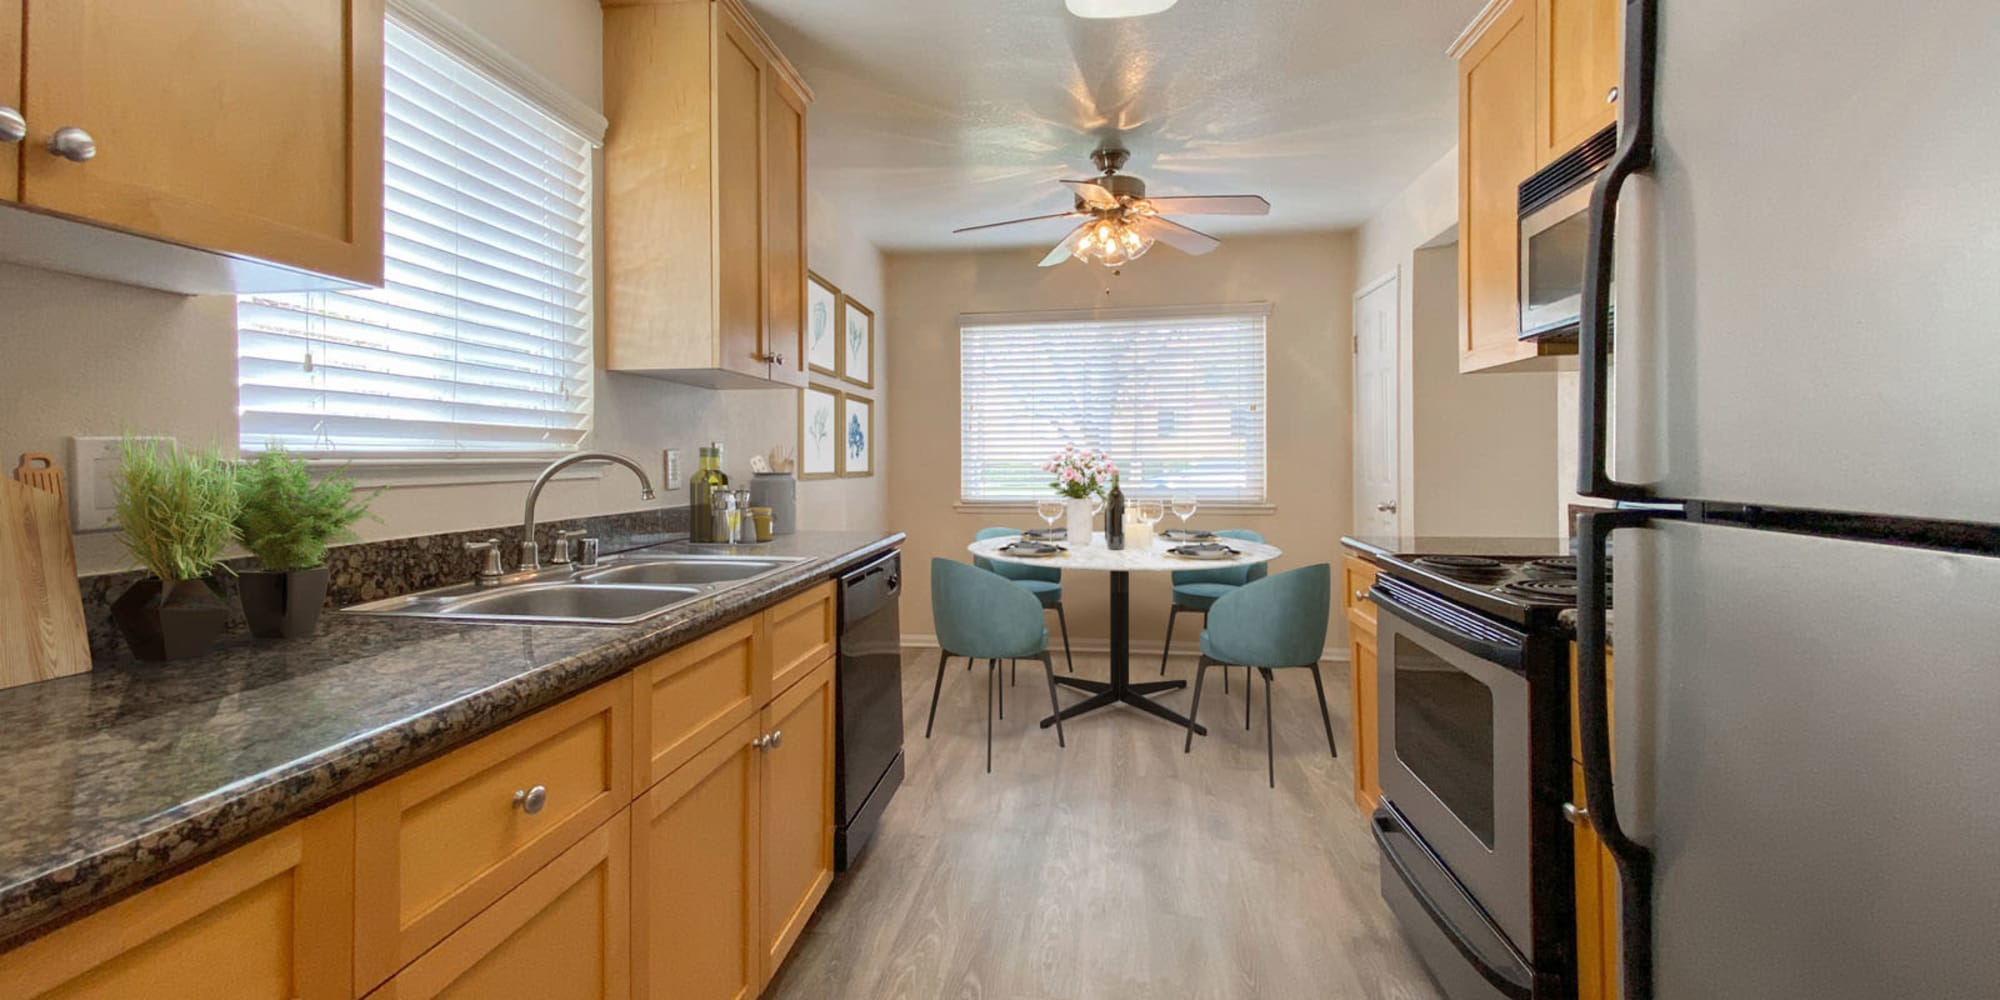 Cherry wood cabinetry and granite countertops in a model home's kitchen at Pleasanton Place Apartment Homes in Pleasanton, California